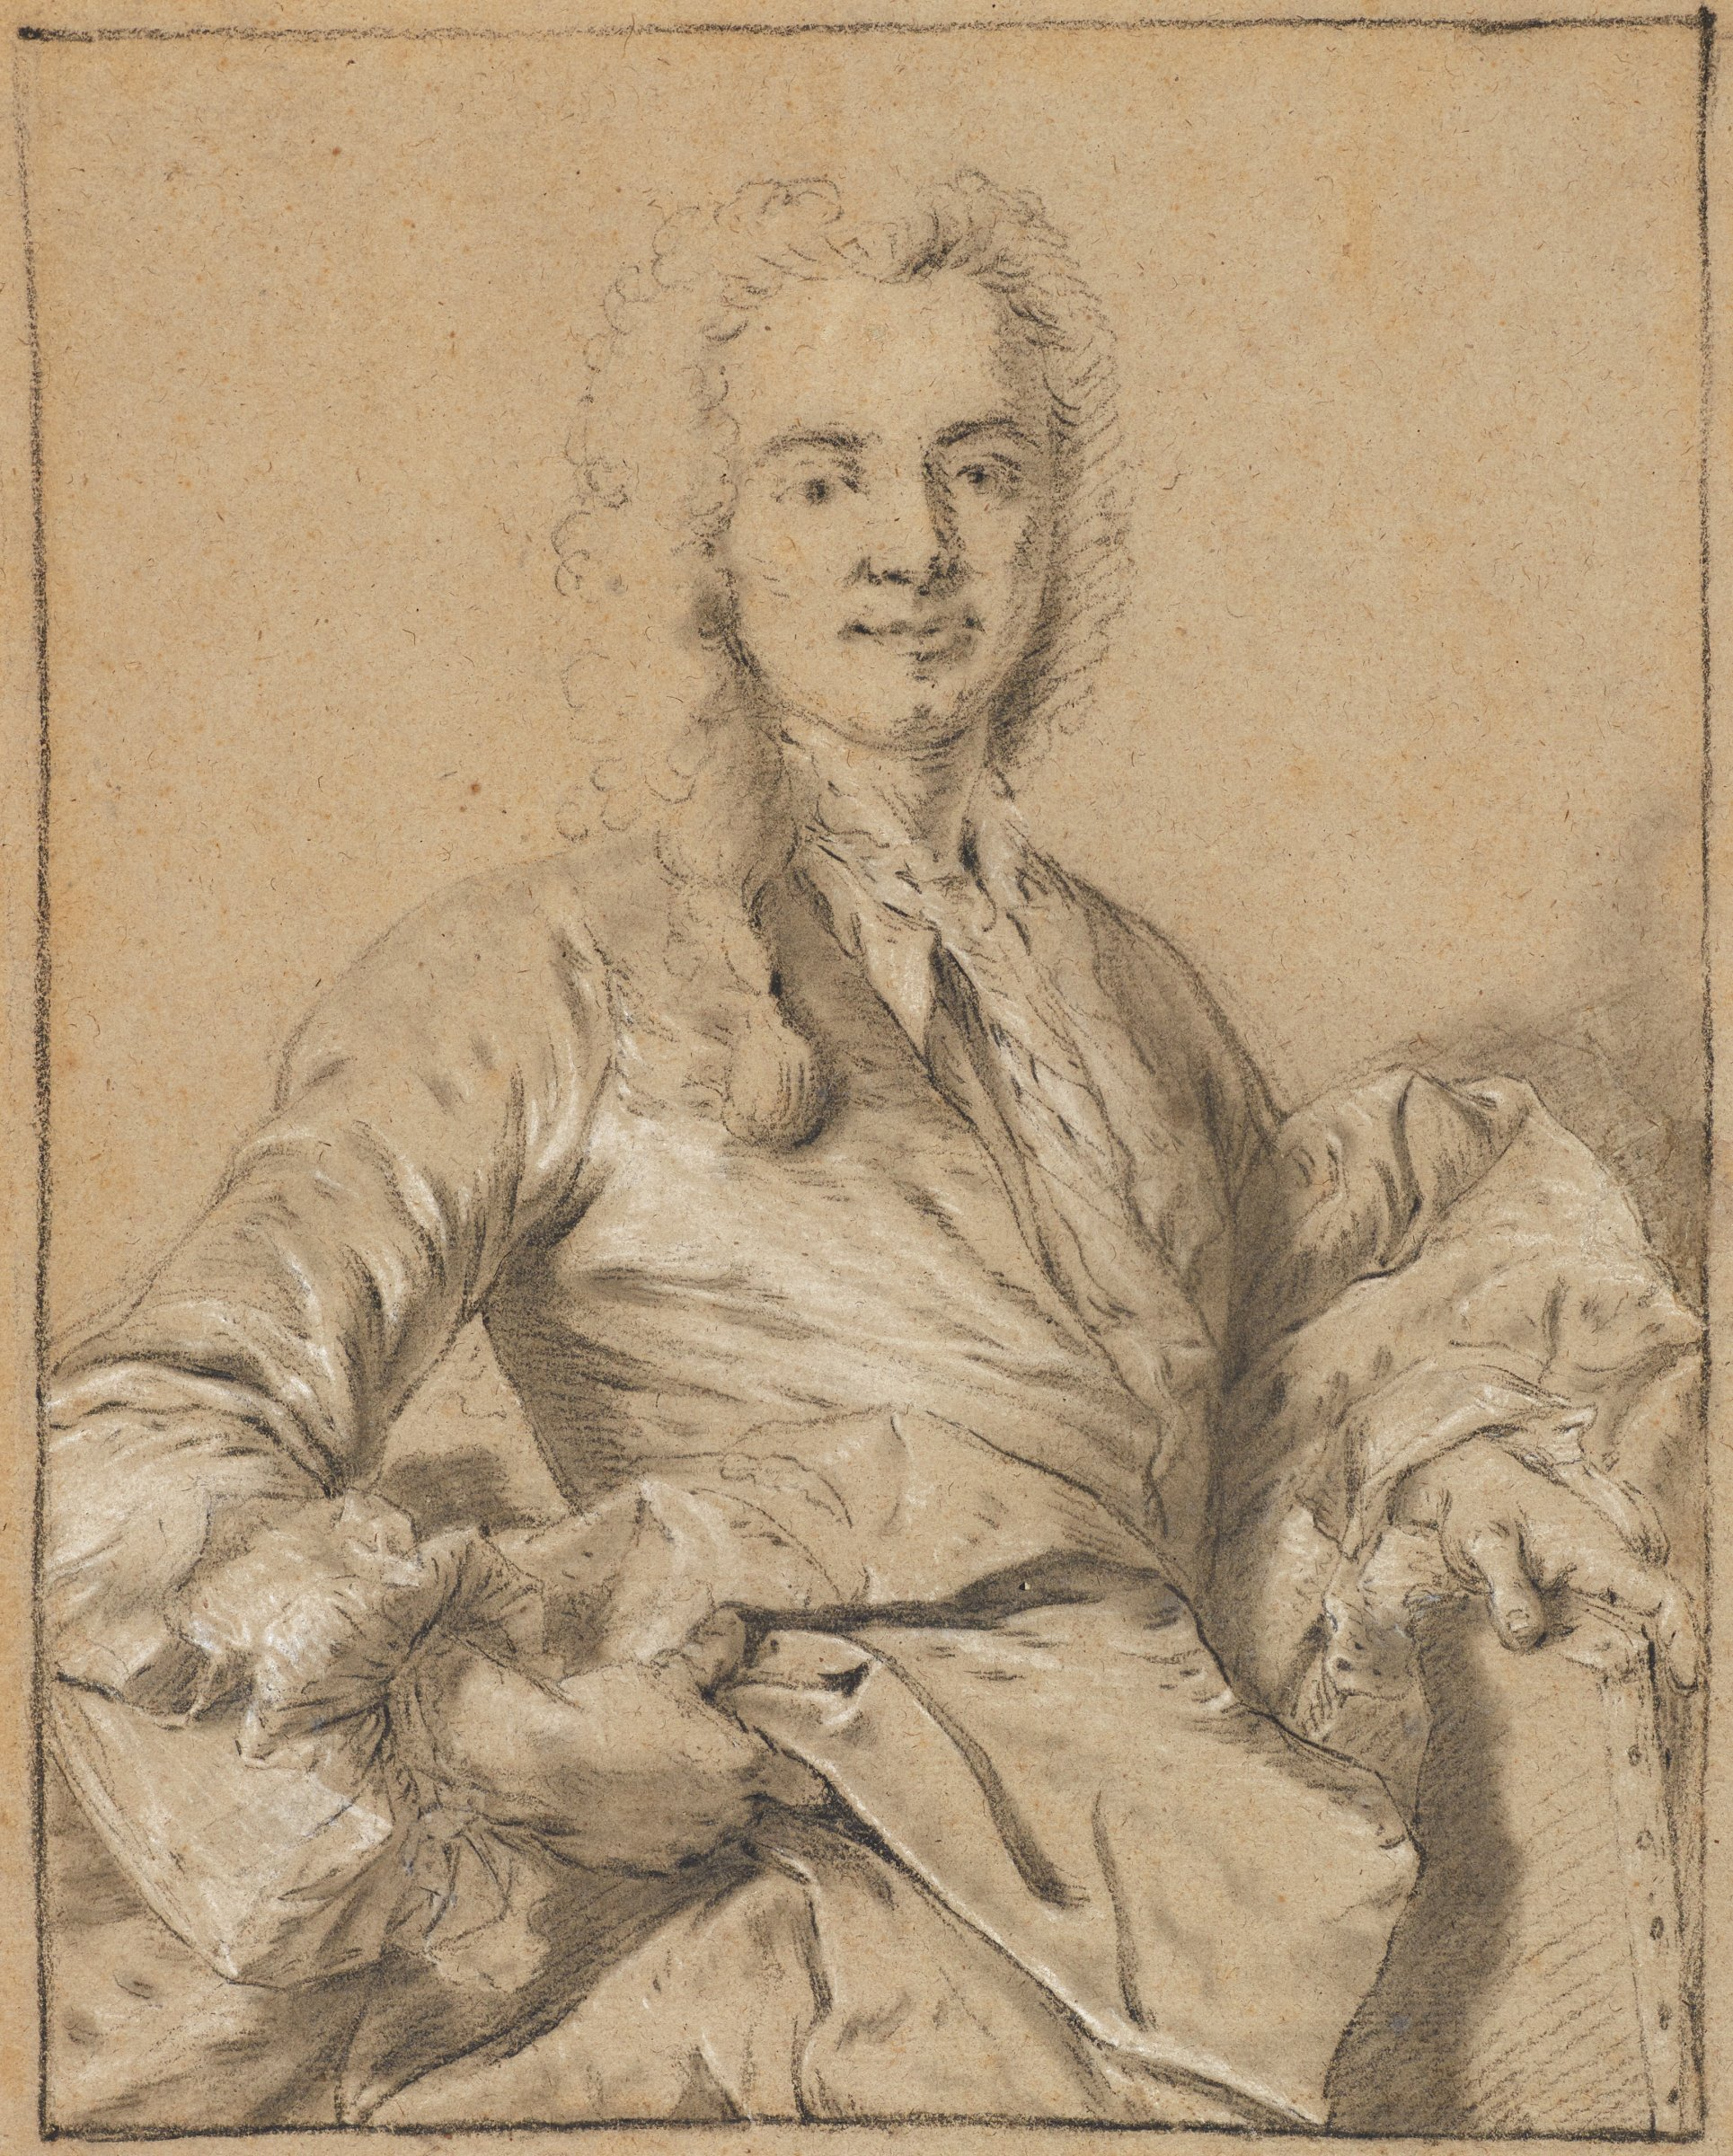 A gentleman seen in three-fourths view, his body twists slightly out to the viewer. He holds a canvas in his left hand.